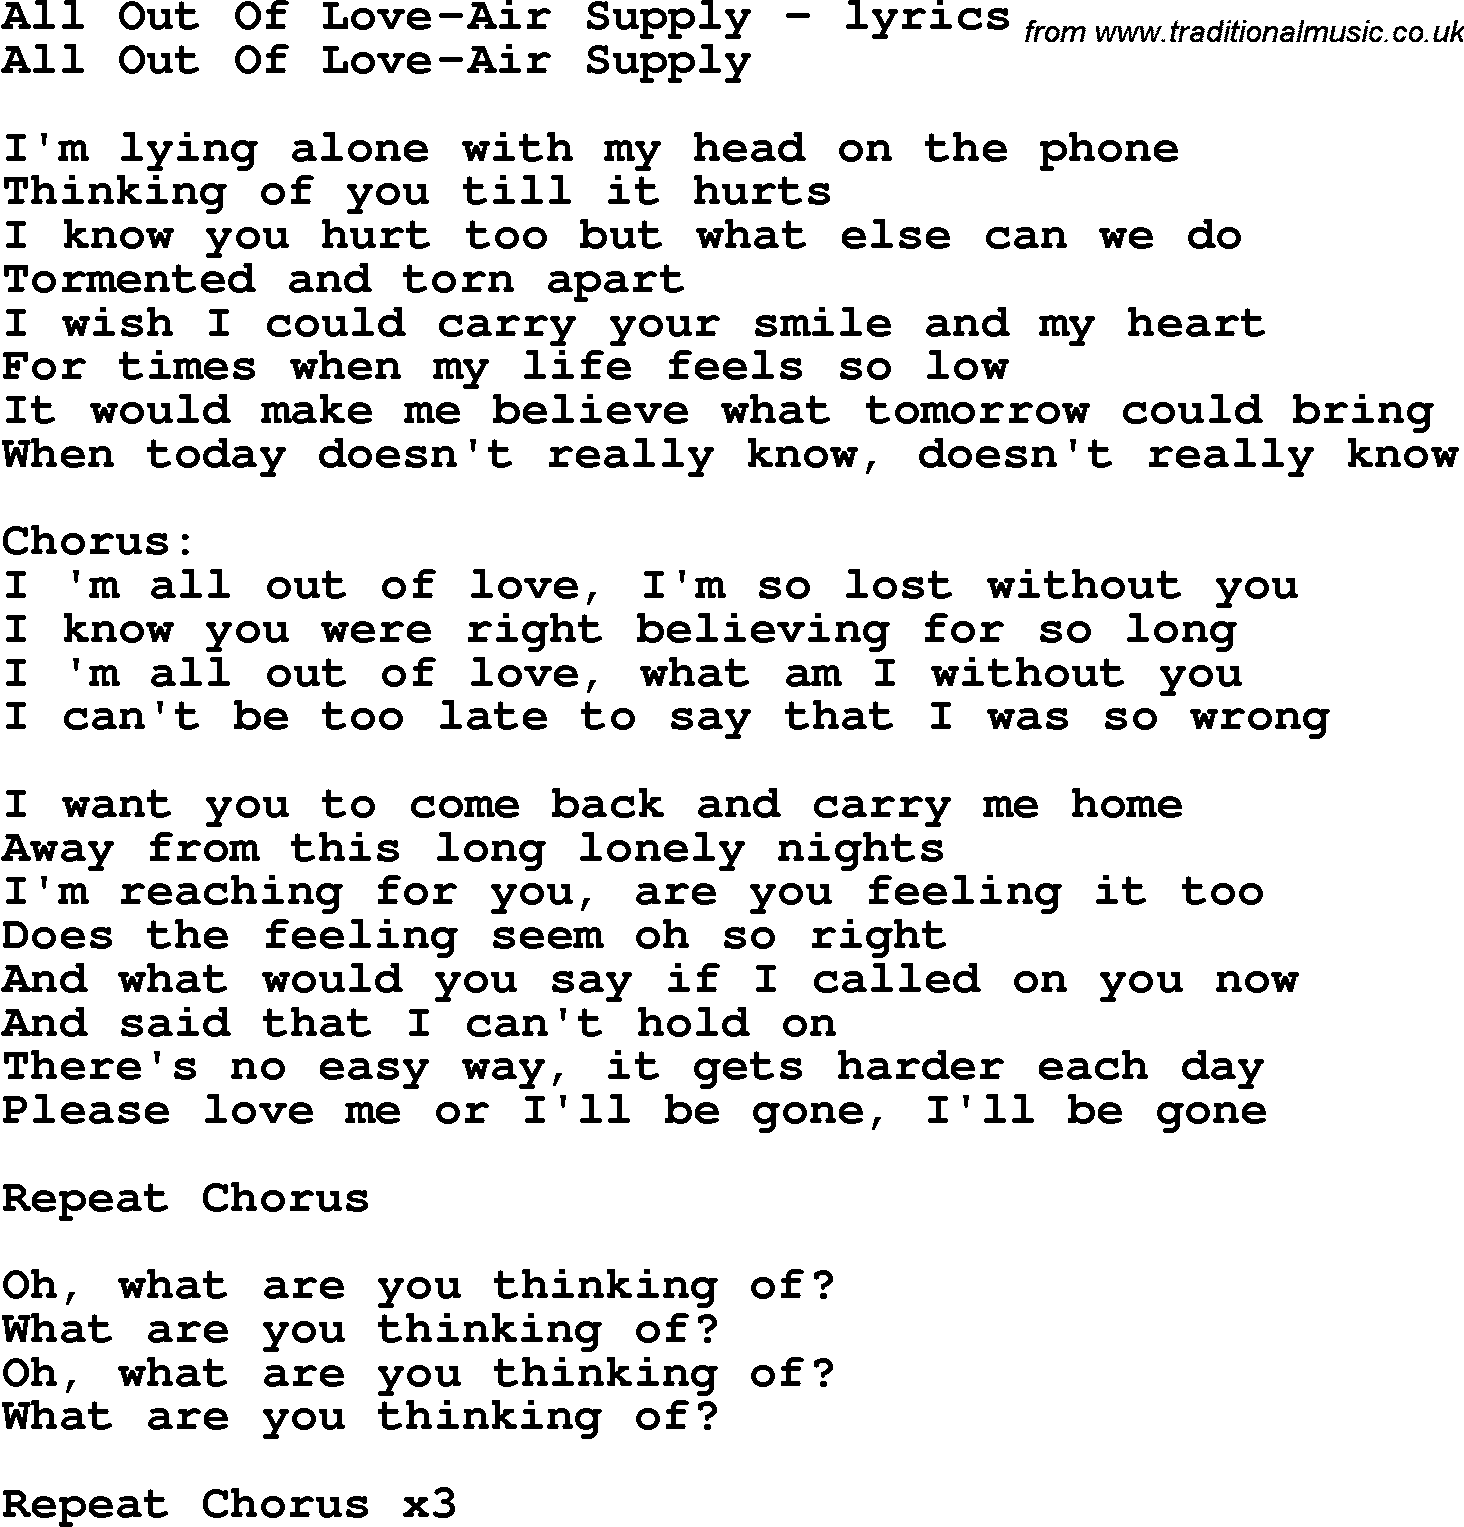 ALL OUT OF LOVE Chords - Air Supply E-Chords